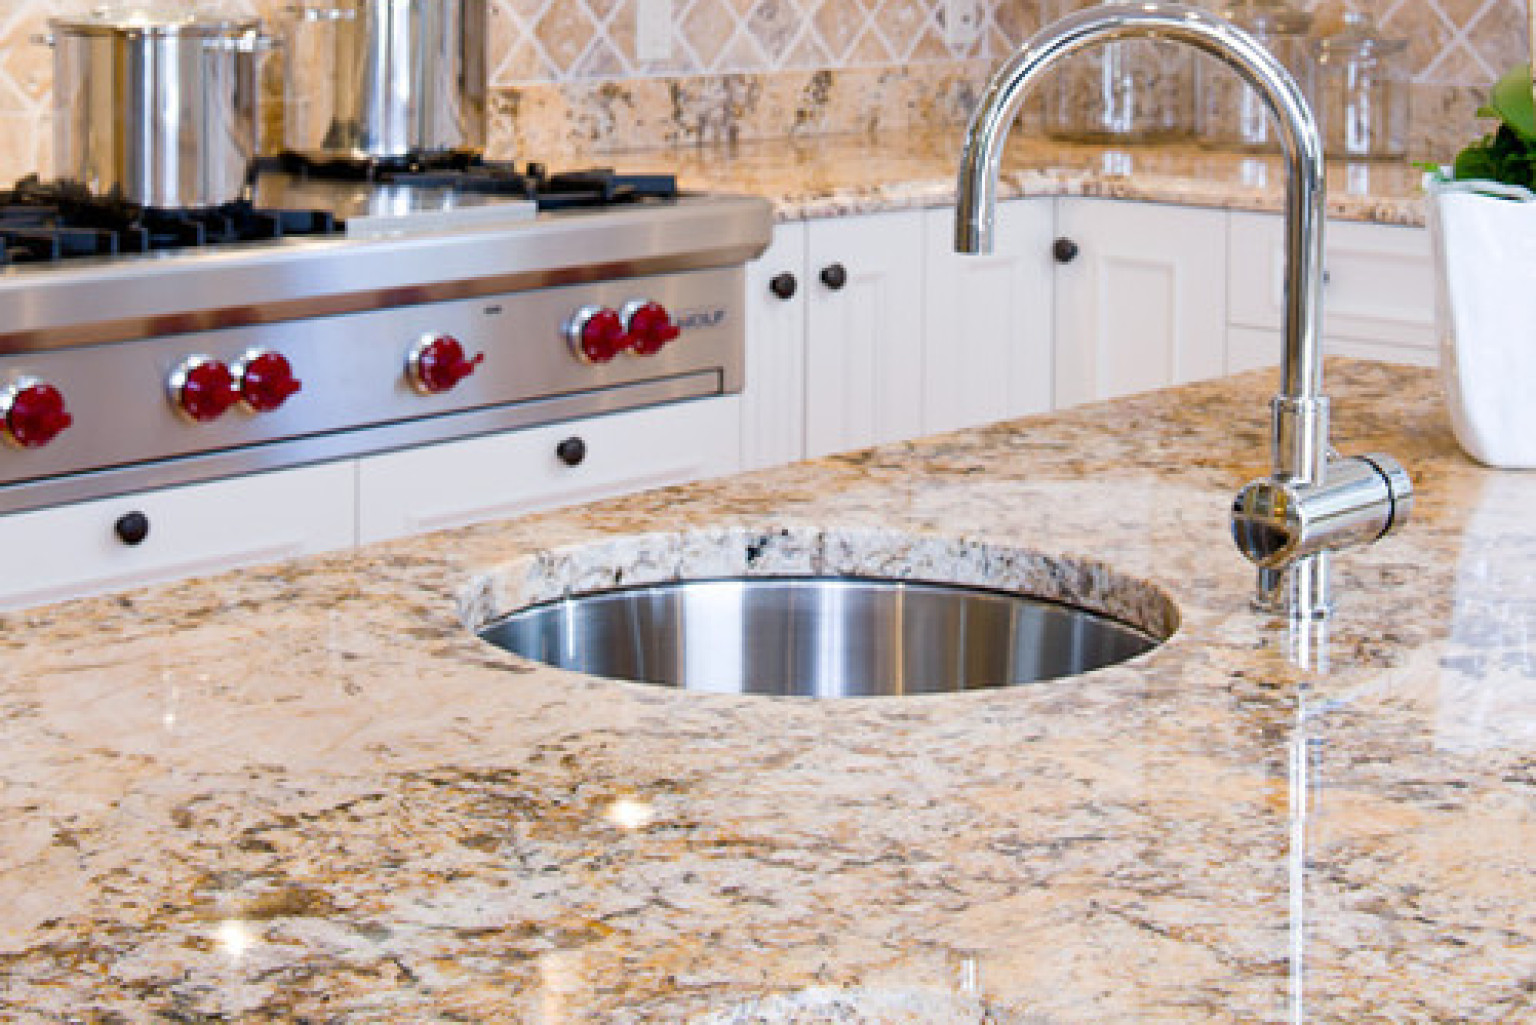 Kitchen Countertops Buying Guide: The Ins And Outs Of The Best ...